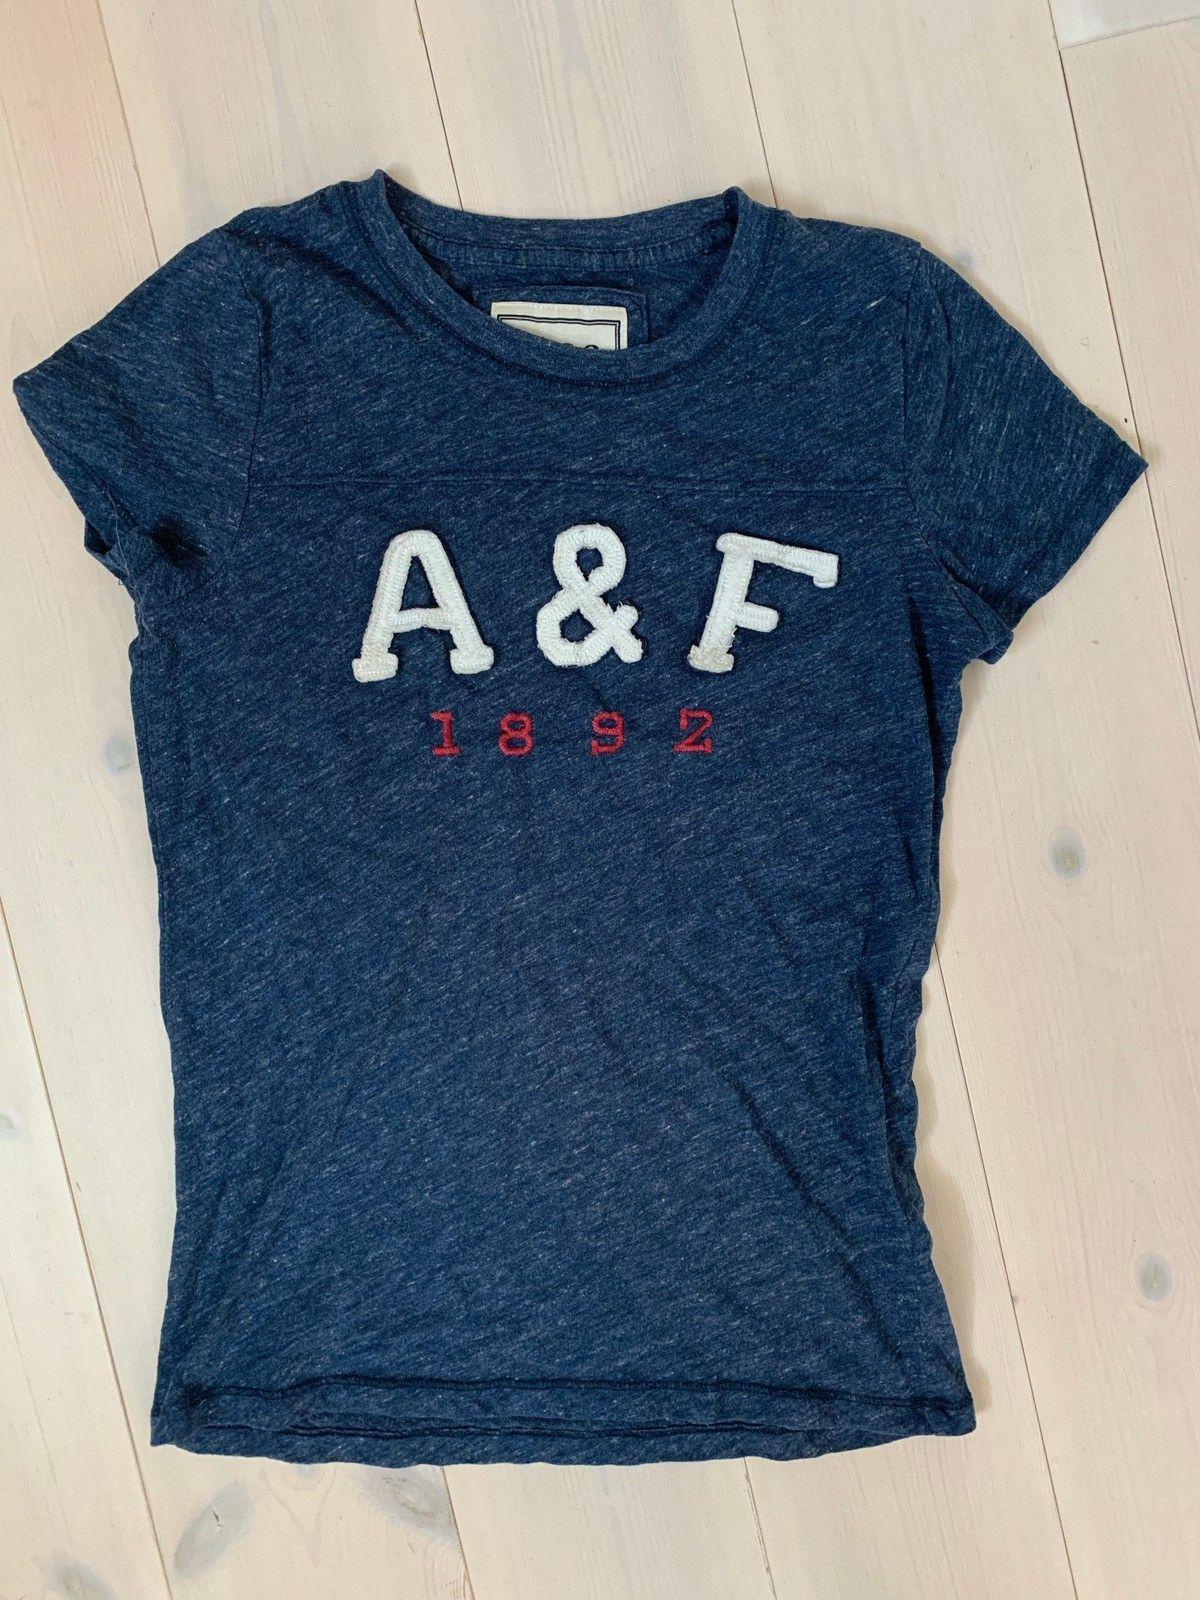 T skjorter fra Abercrombie and Fitch selges! | FINN.no